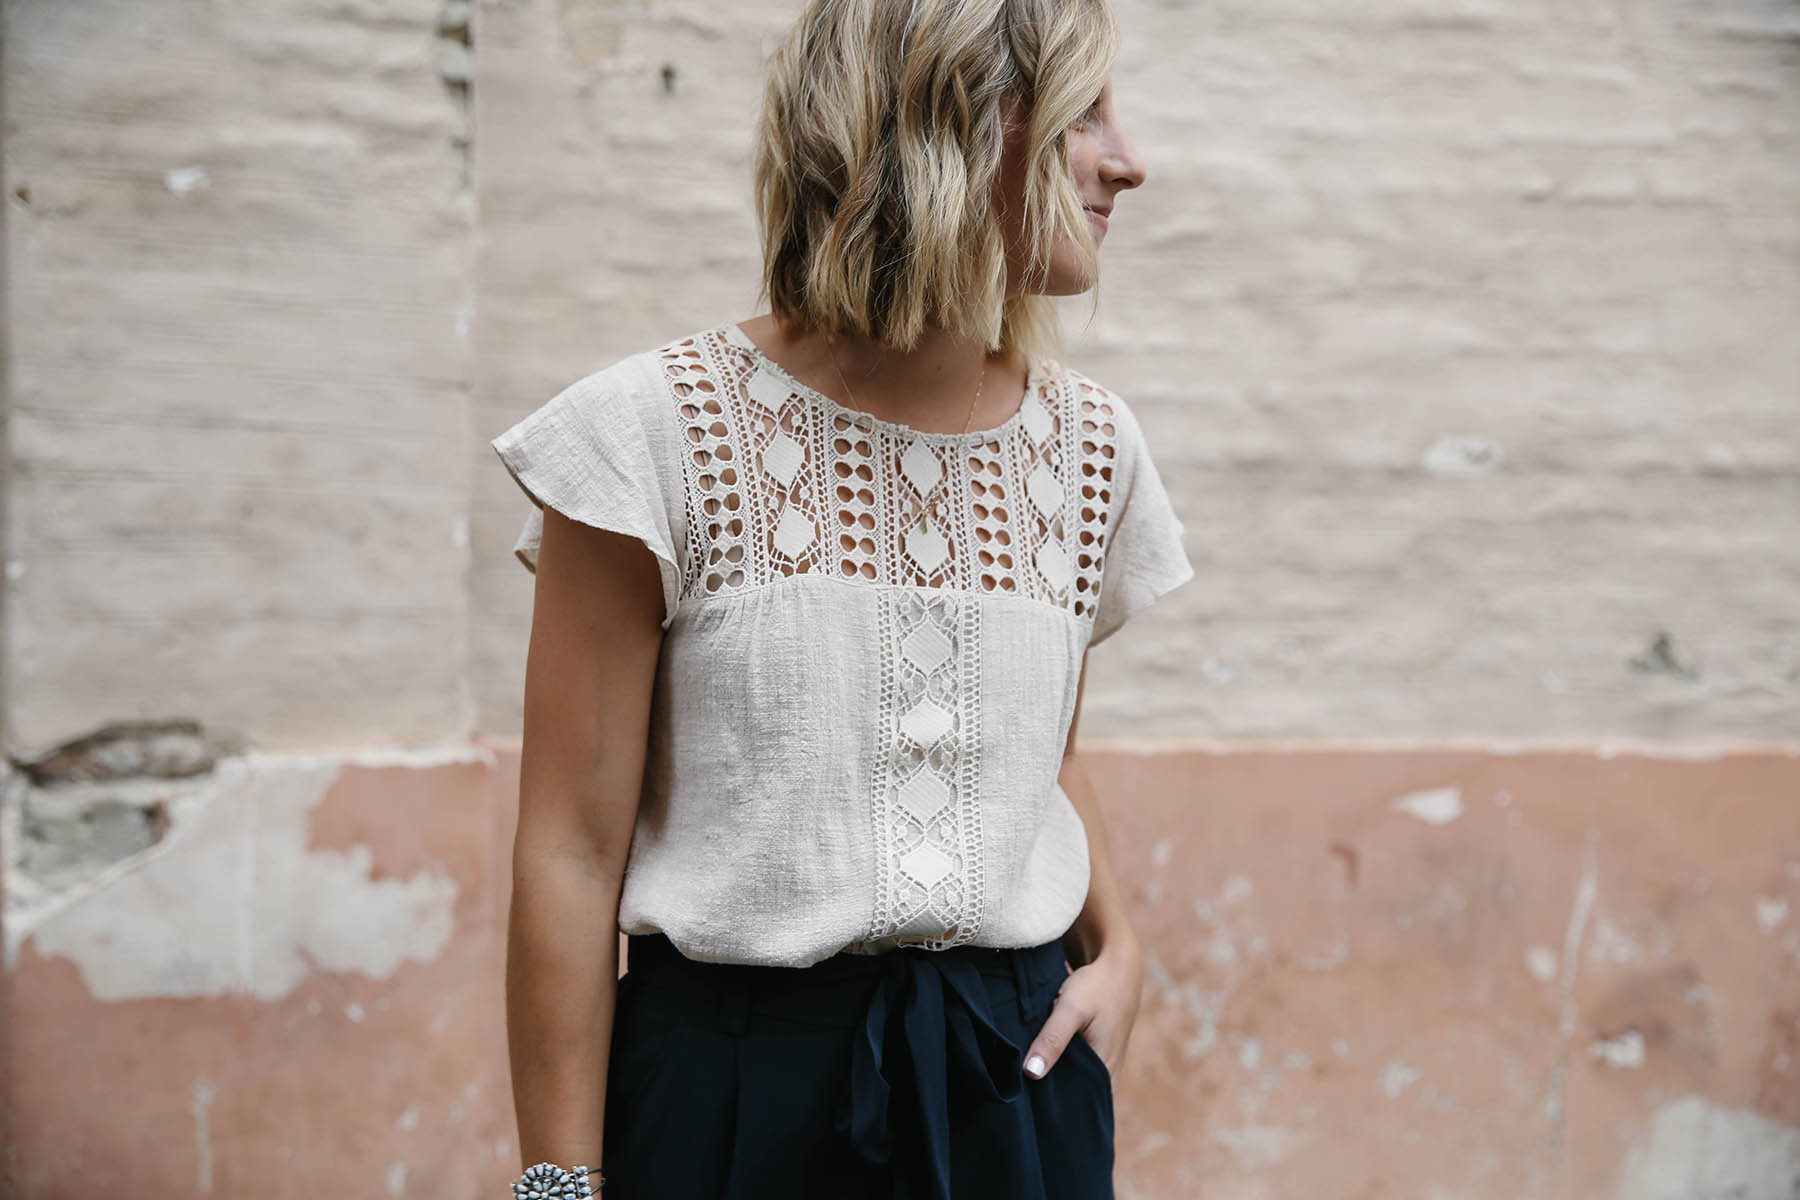 navy culottes outfit with crochet top and short blunt bob hairstyle